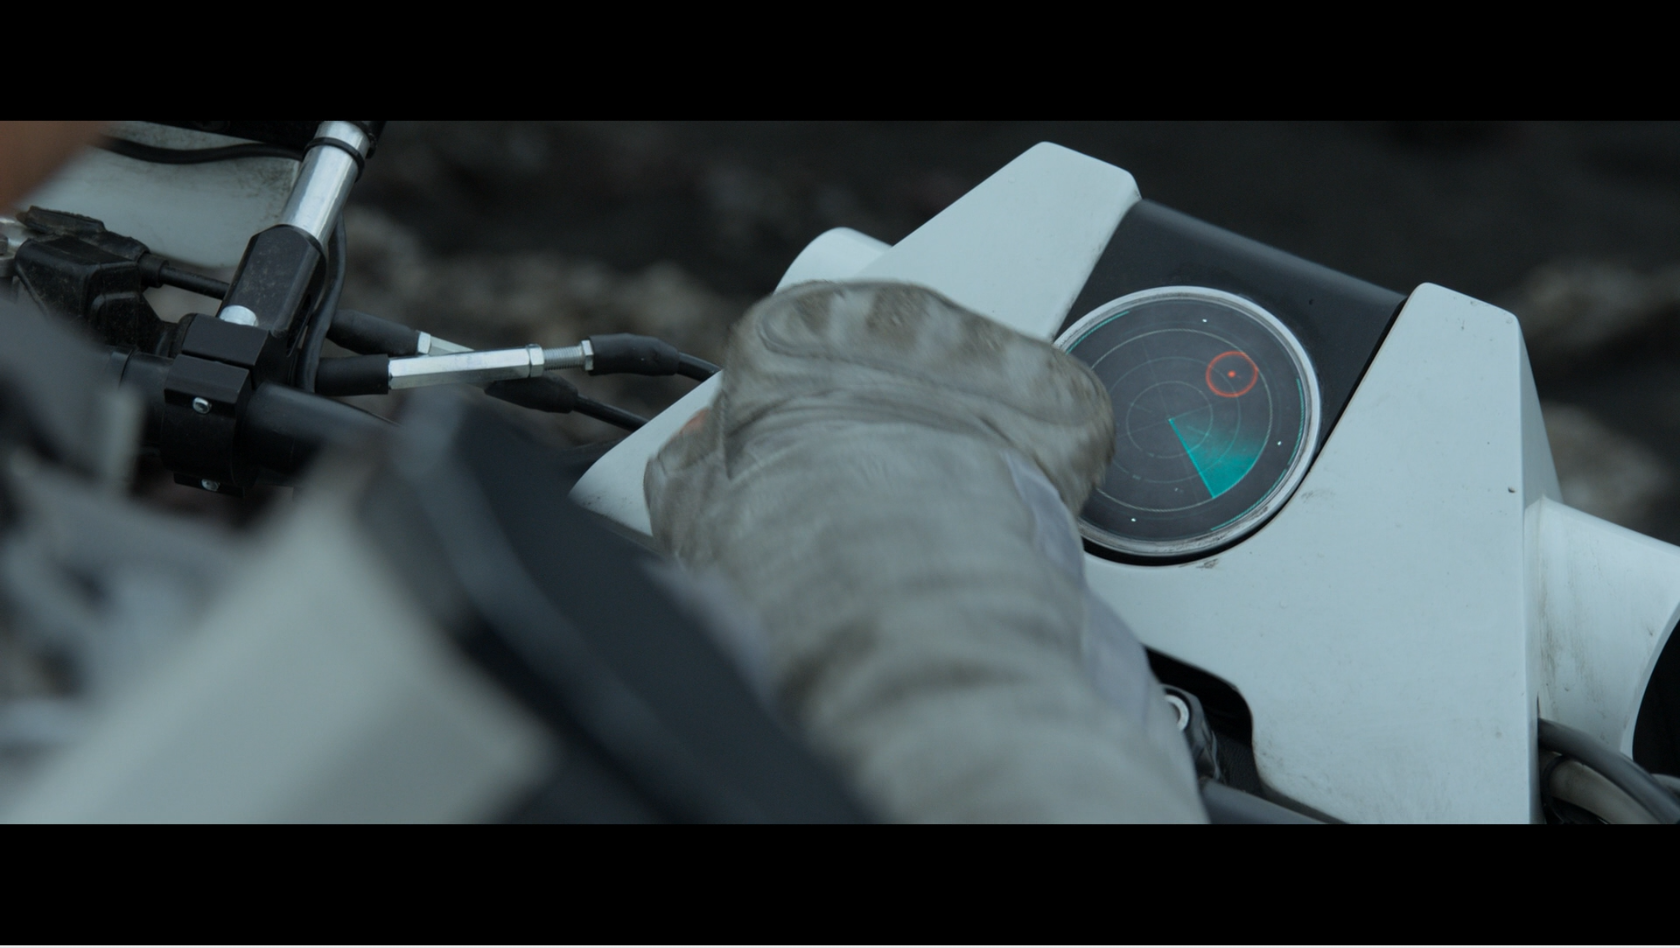 View of Jack from the movie Oblivions motorcycle interface display showing the positions of drones he is tracking